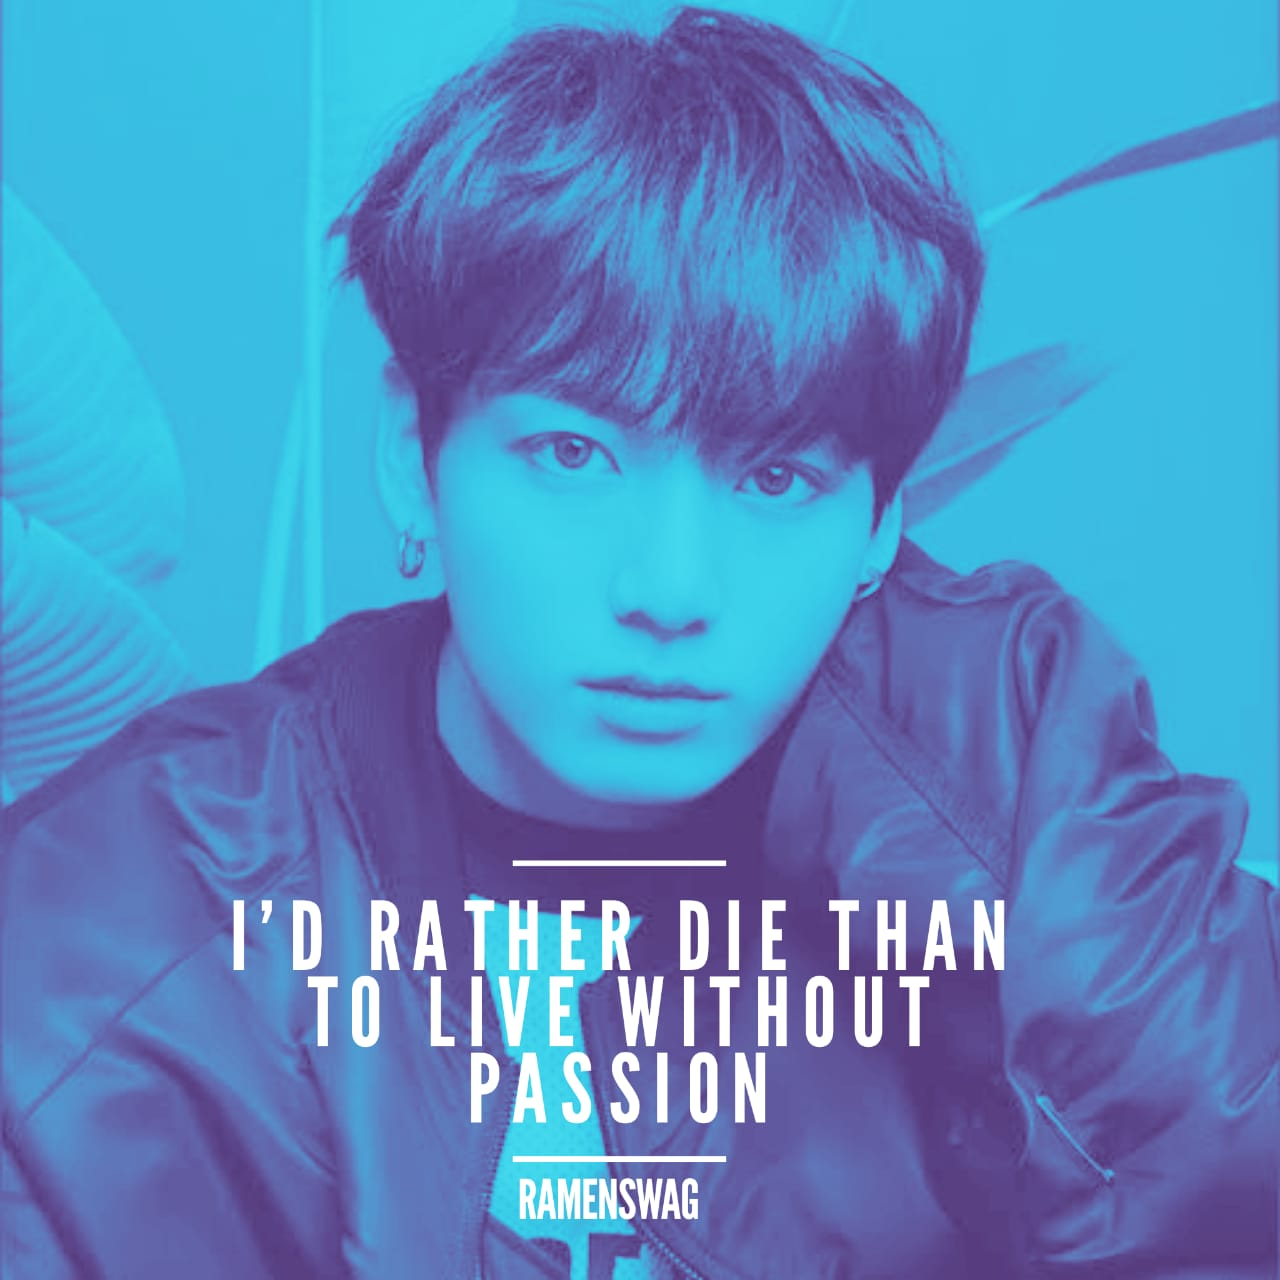 4 Motivational BTS Quotes From Songs To Kickstart Your Day! - The